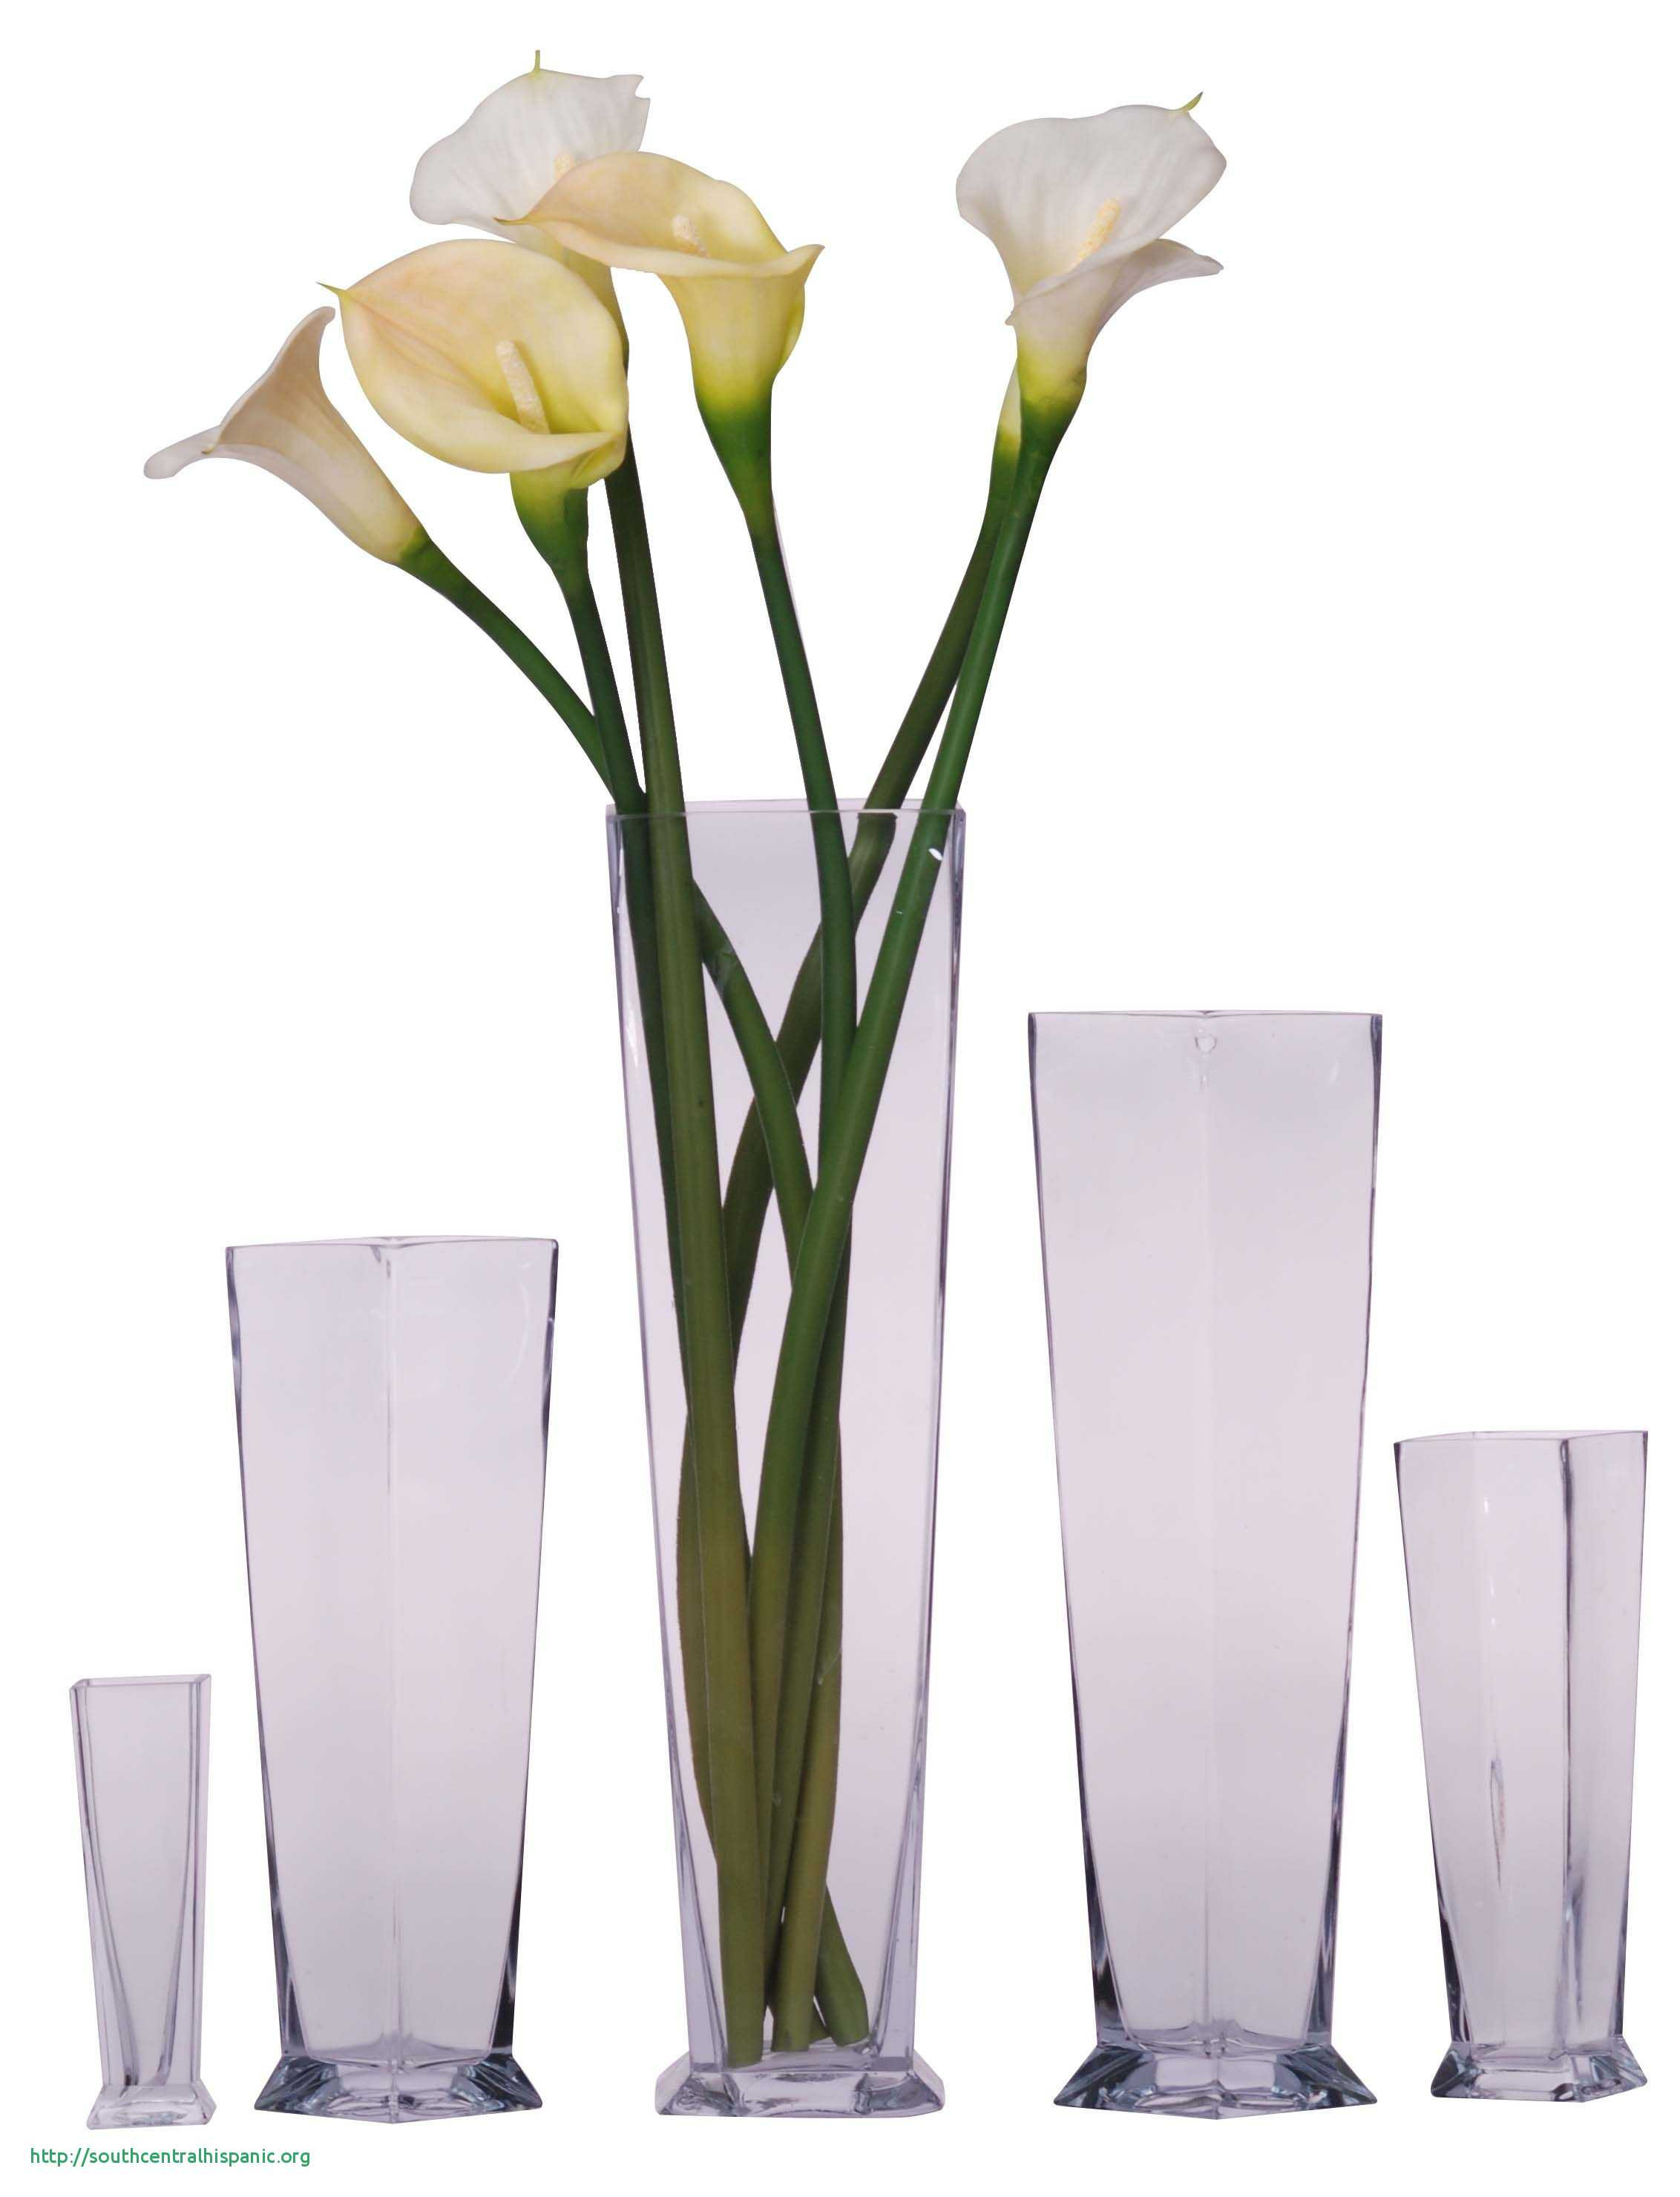 24 glass cylinder vases of 40 inch floor vases impressionnant large tall decorative floor vase with regard to 40 inch floor vases impressionnant 40 inch tall glass cylinder vases elegant gla